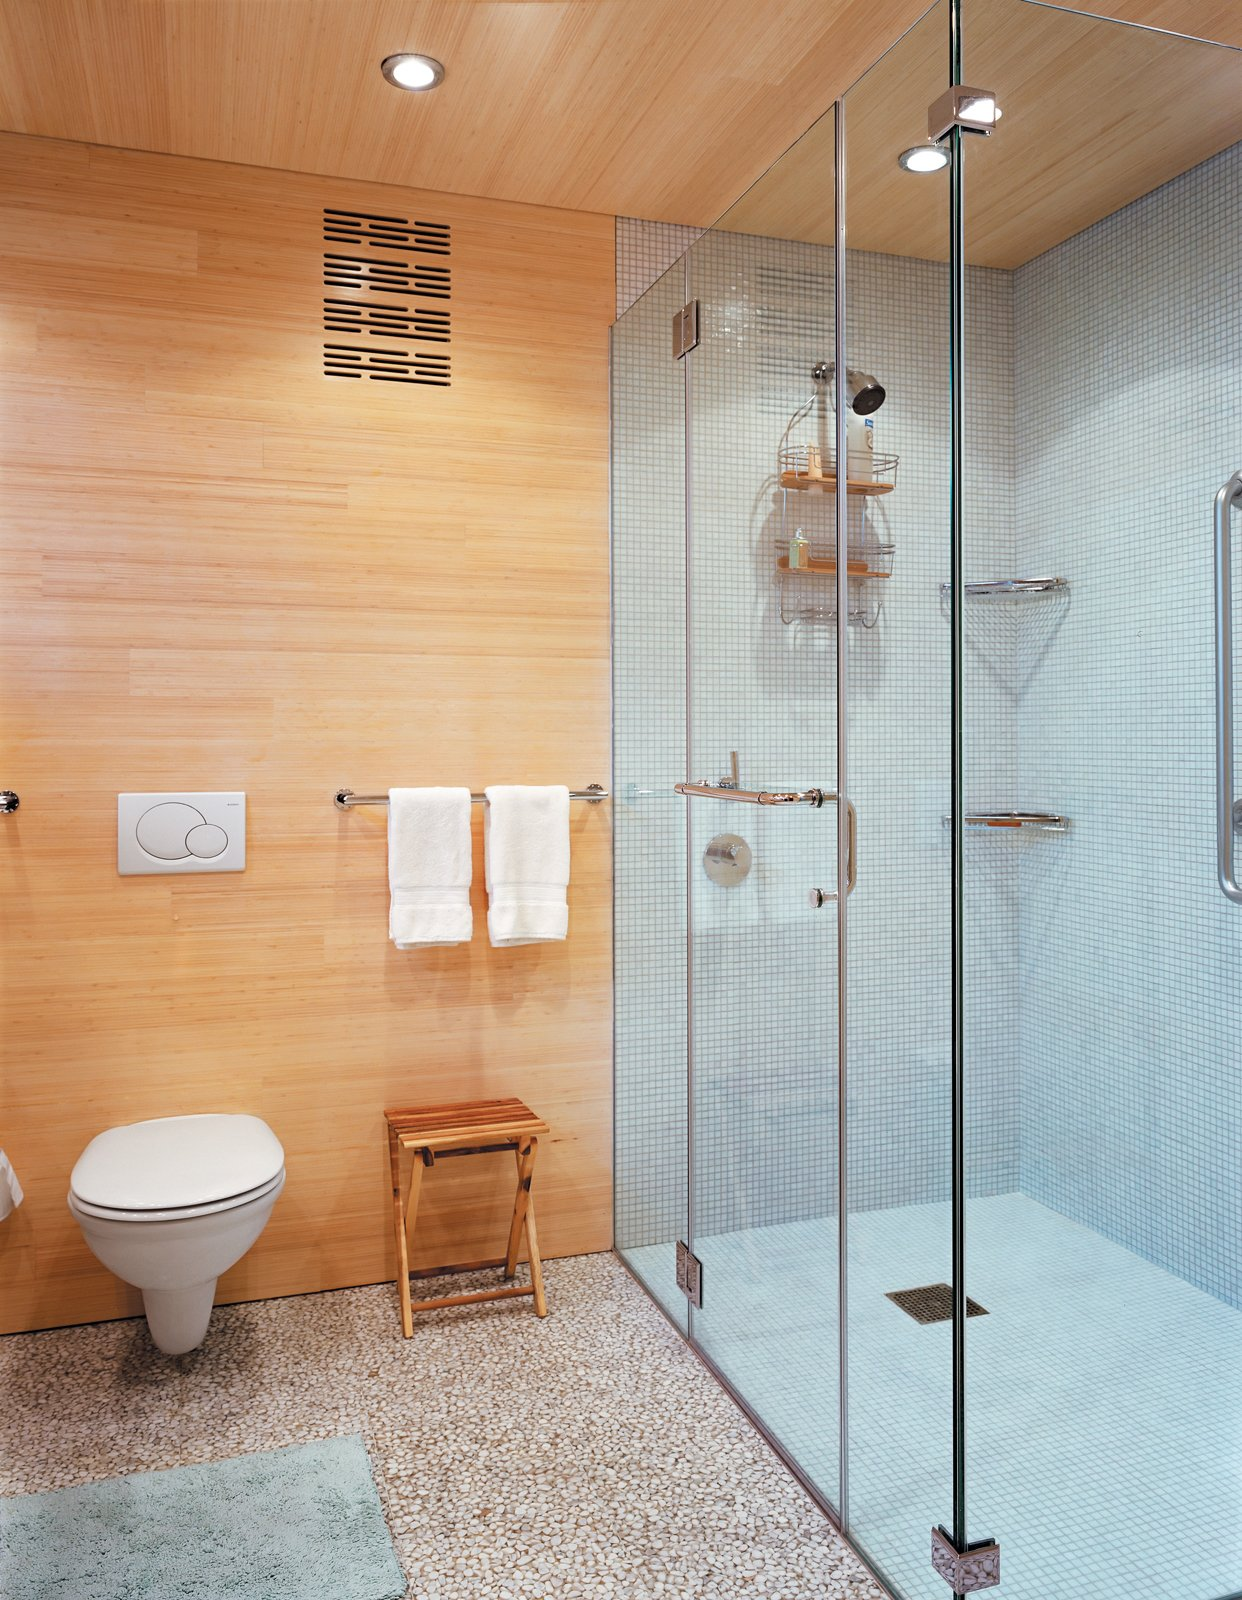 The floors, walls, and ceilings are coated in FSC-Certified laminated bleached bamboo. Tagged: Bath Room, Terrazzo Floor, One Piece Toilet, Recessed Lighting, Enclosed Shower, and Ceramic Tile Wall.  Photo 7 of 10 in Striking Angular Cottage in Connecticut